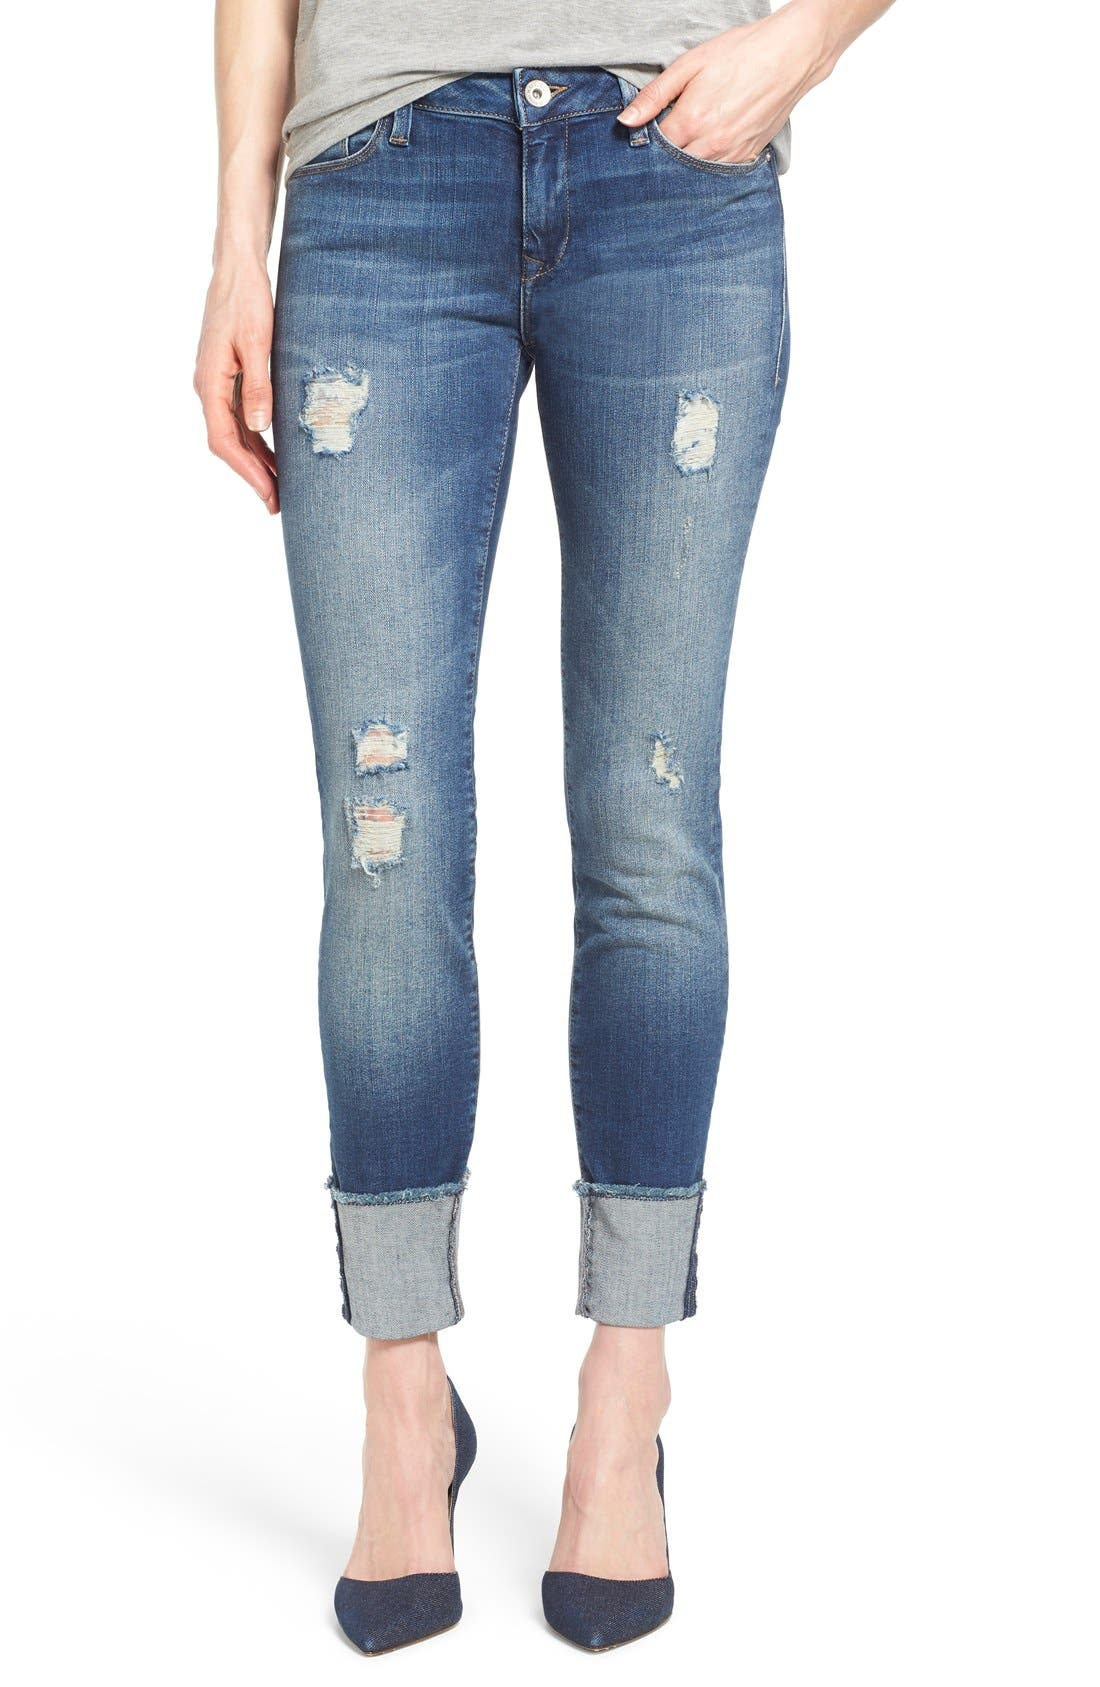 MAVI JEANS 'Erica' Ripped Cuffed Ankle Jeans